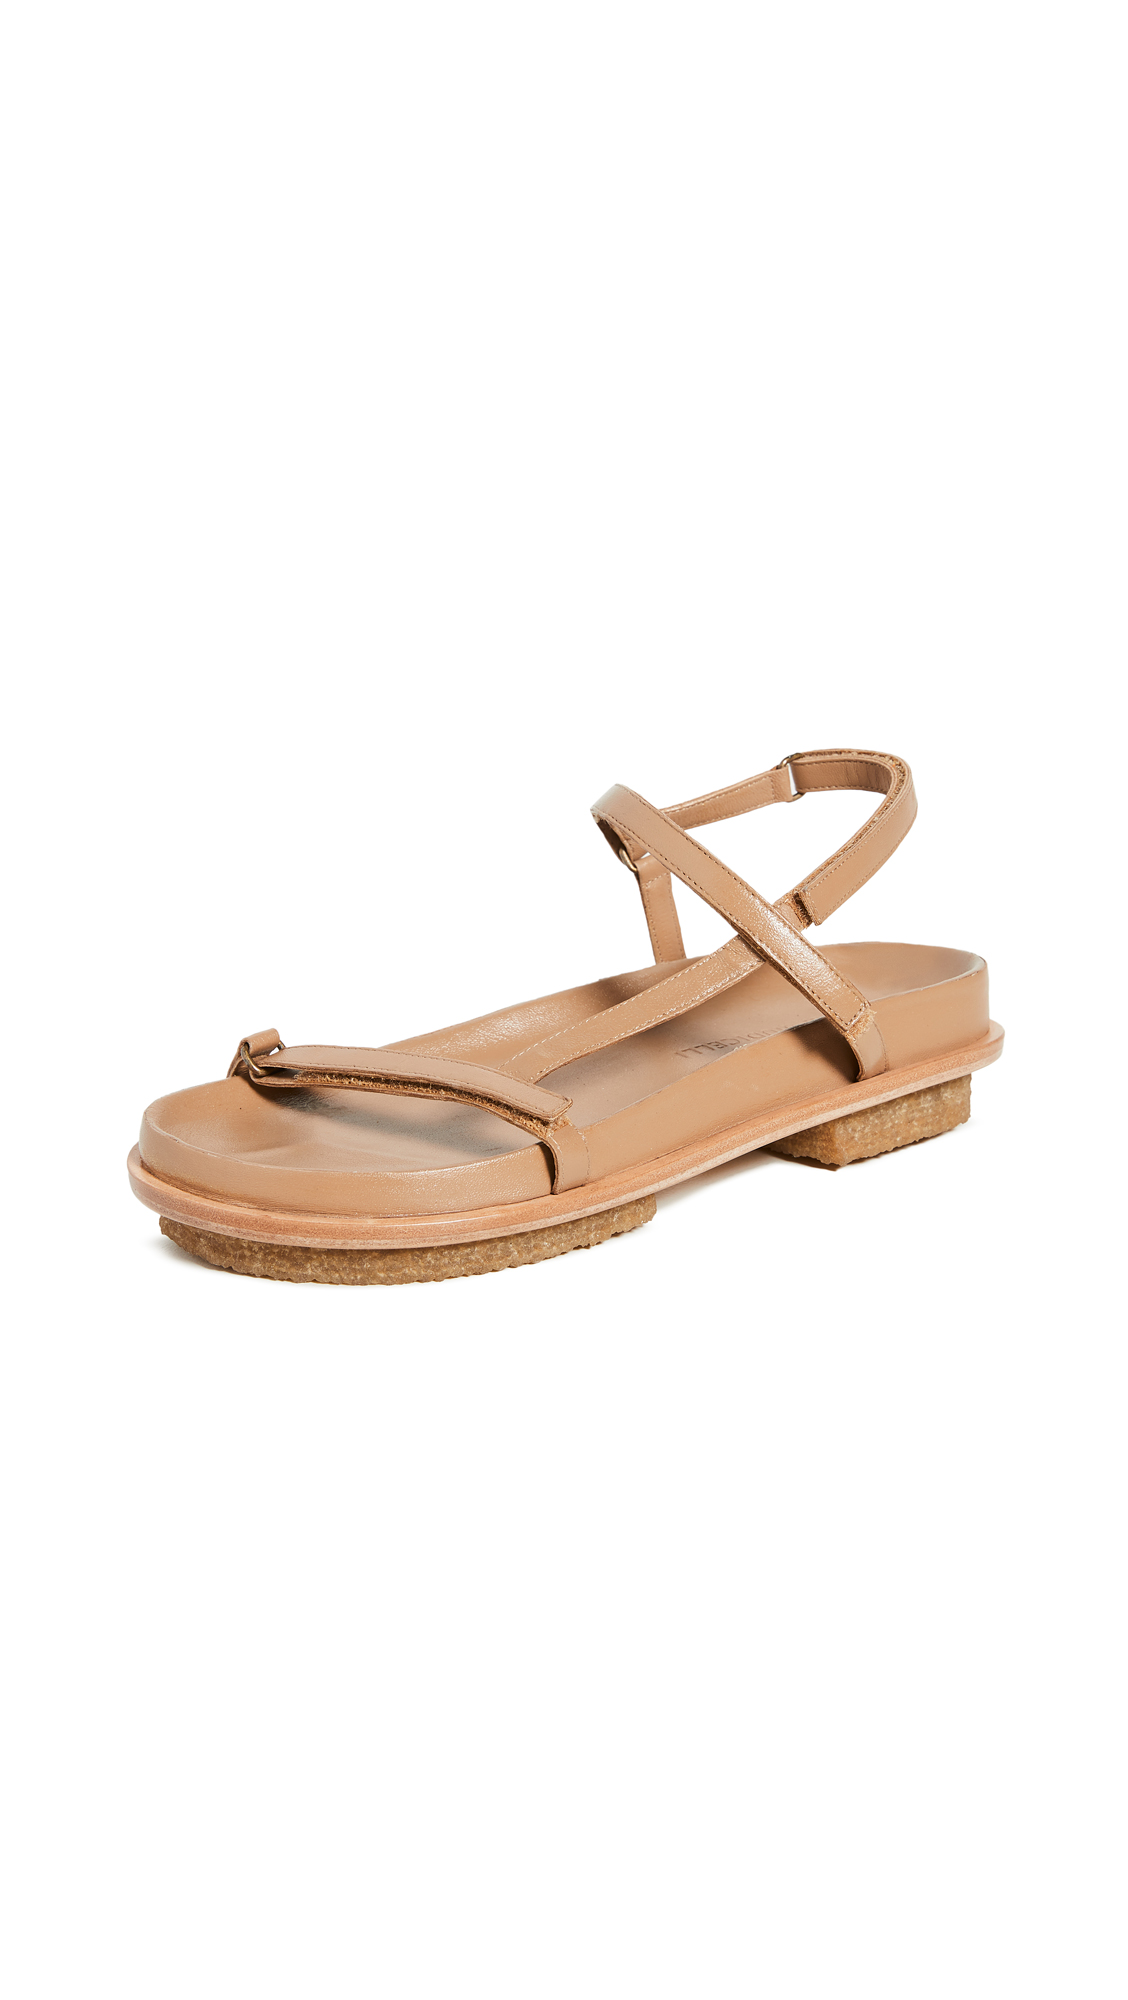 Mari Giudicelli Isabel Sandals - 40% Off Sale